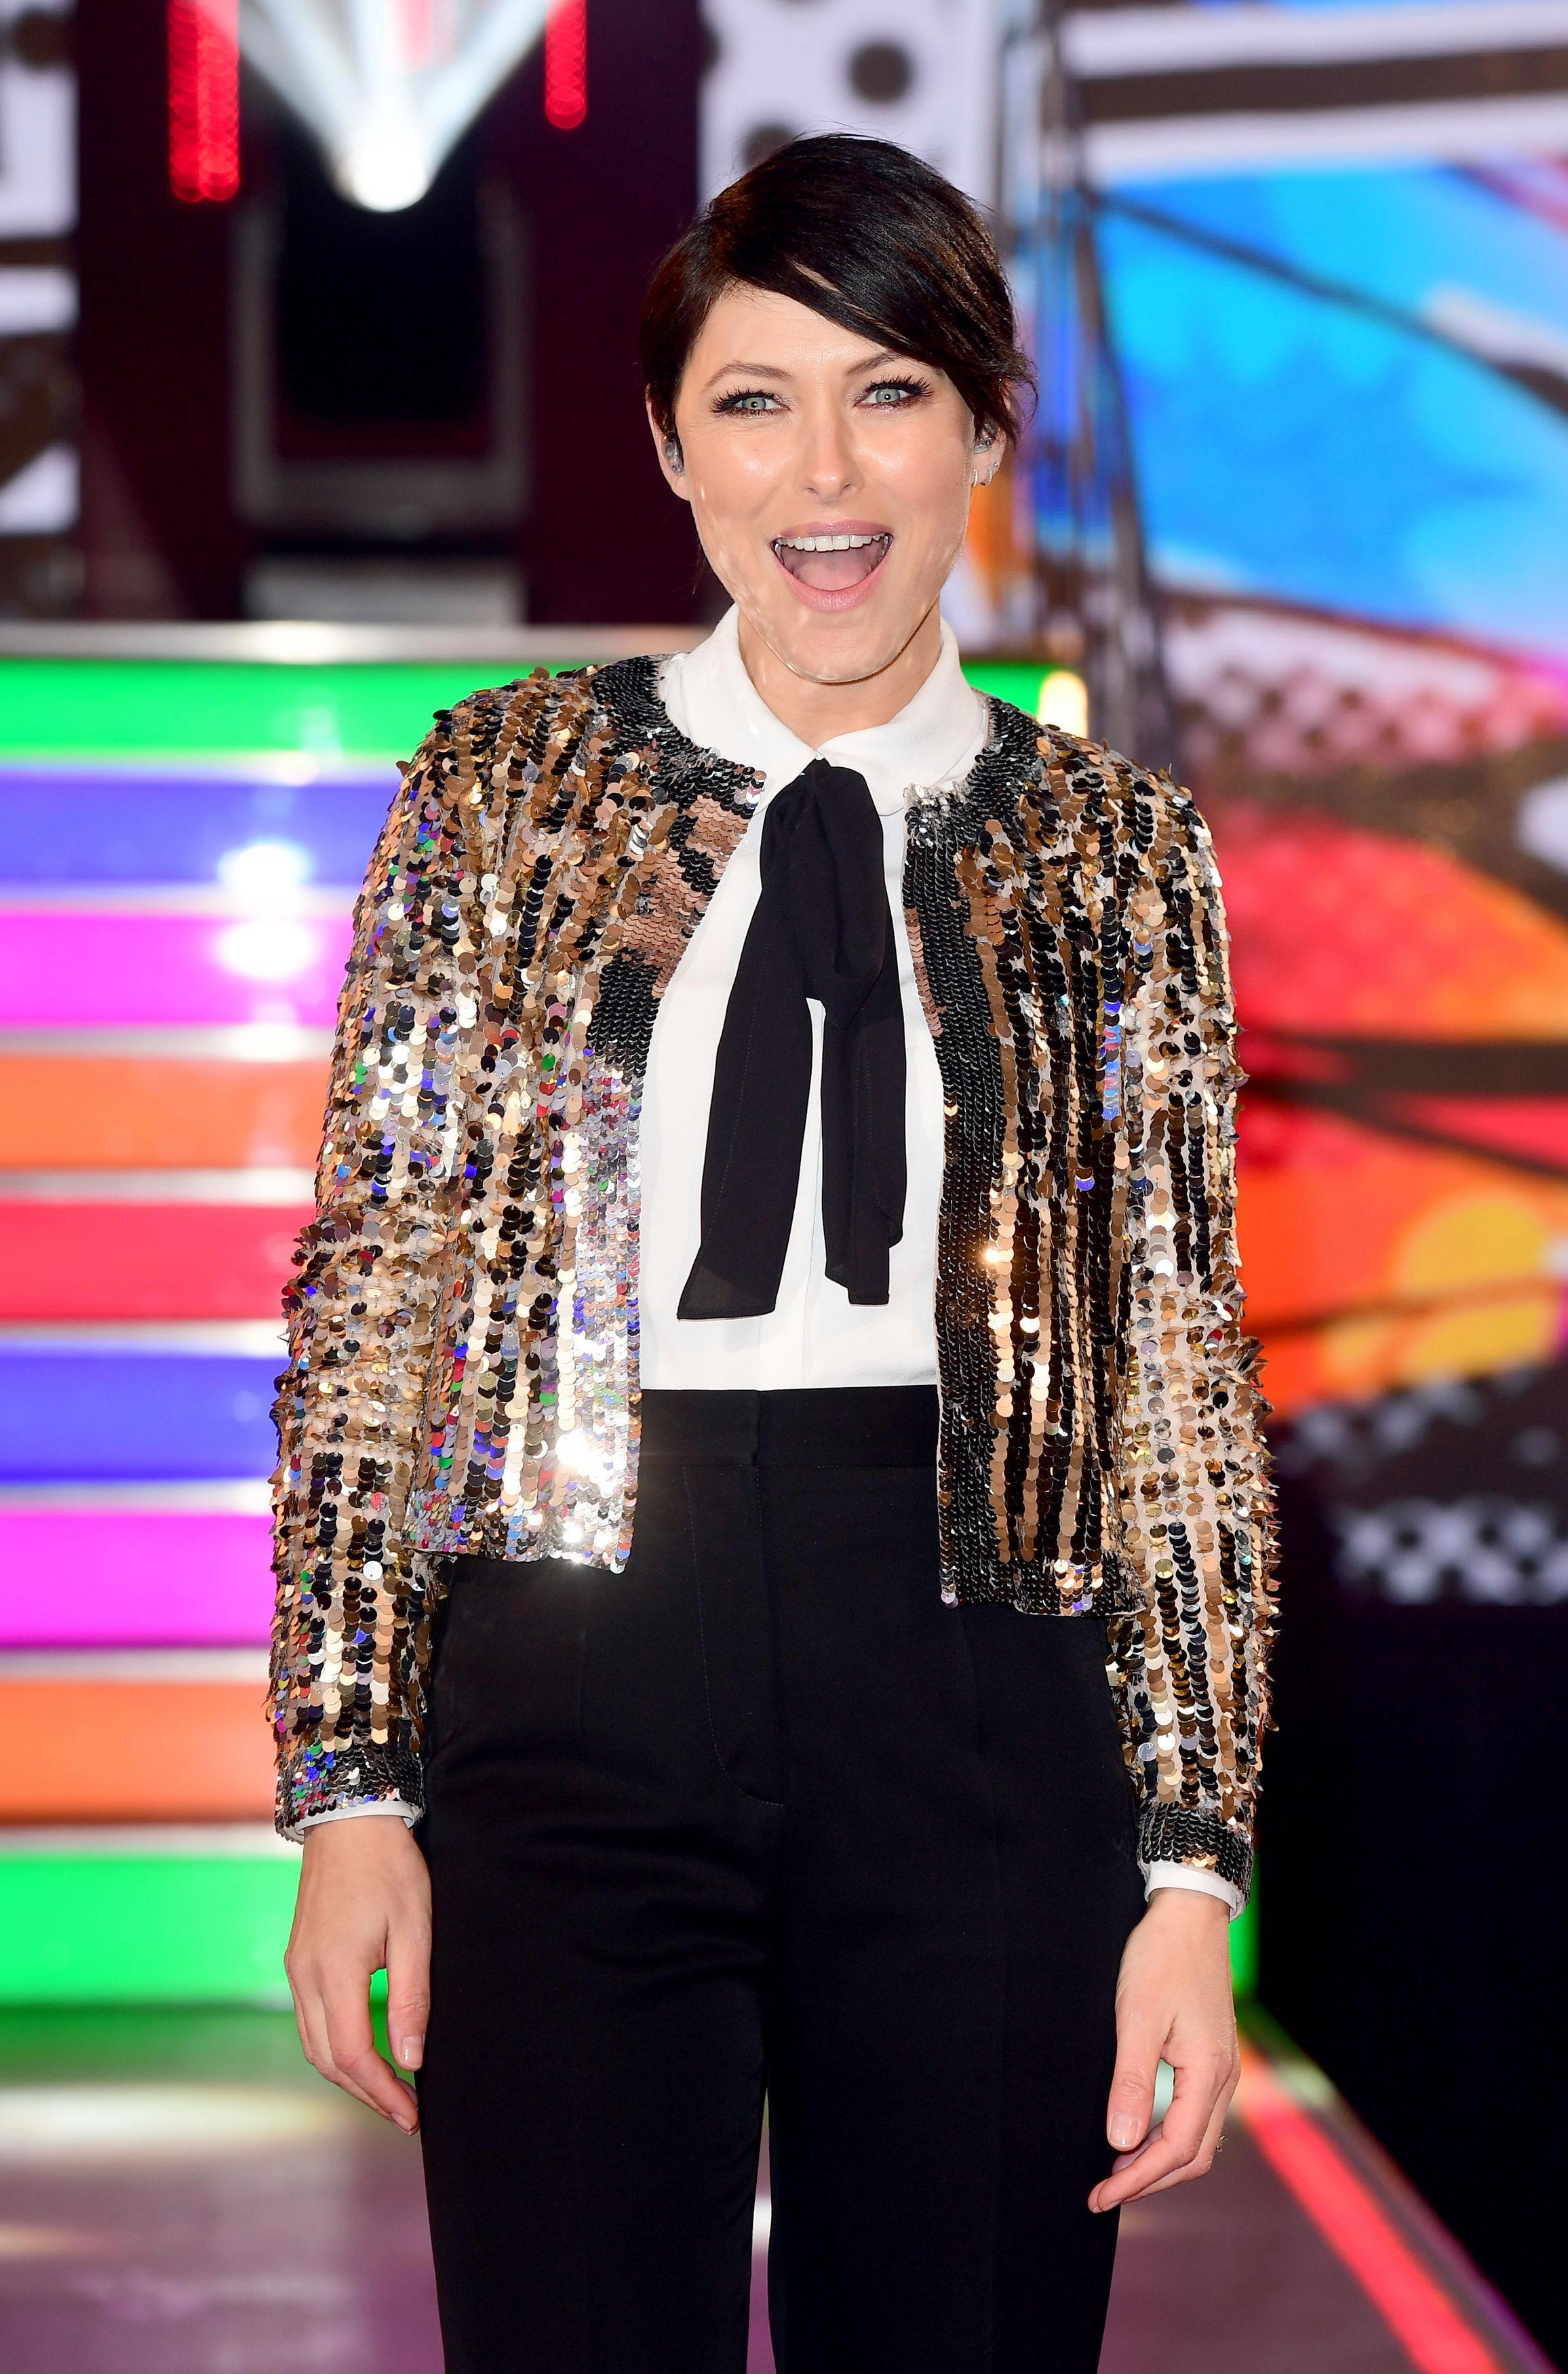 Emma Willis – 5 surprising facts about the Celebrity Big Brother 2018 and The Voice host